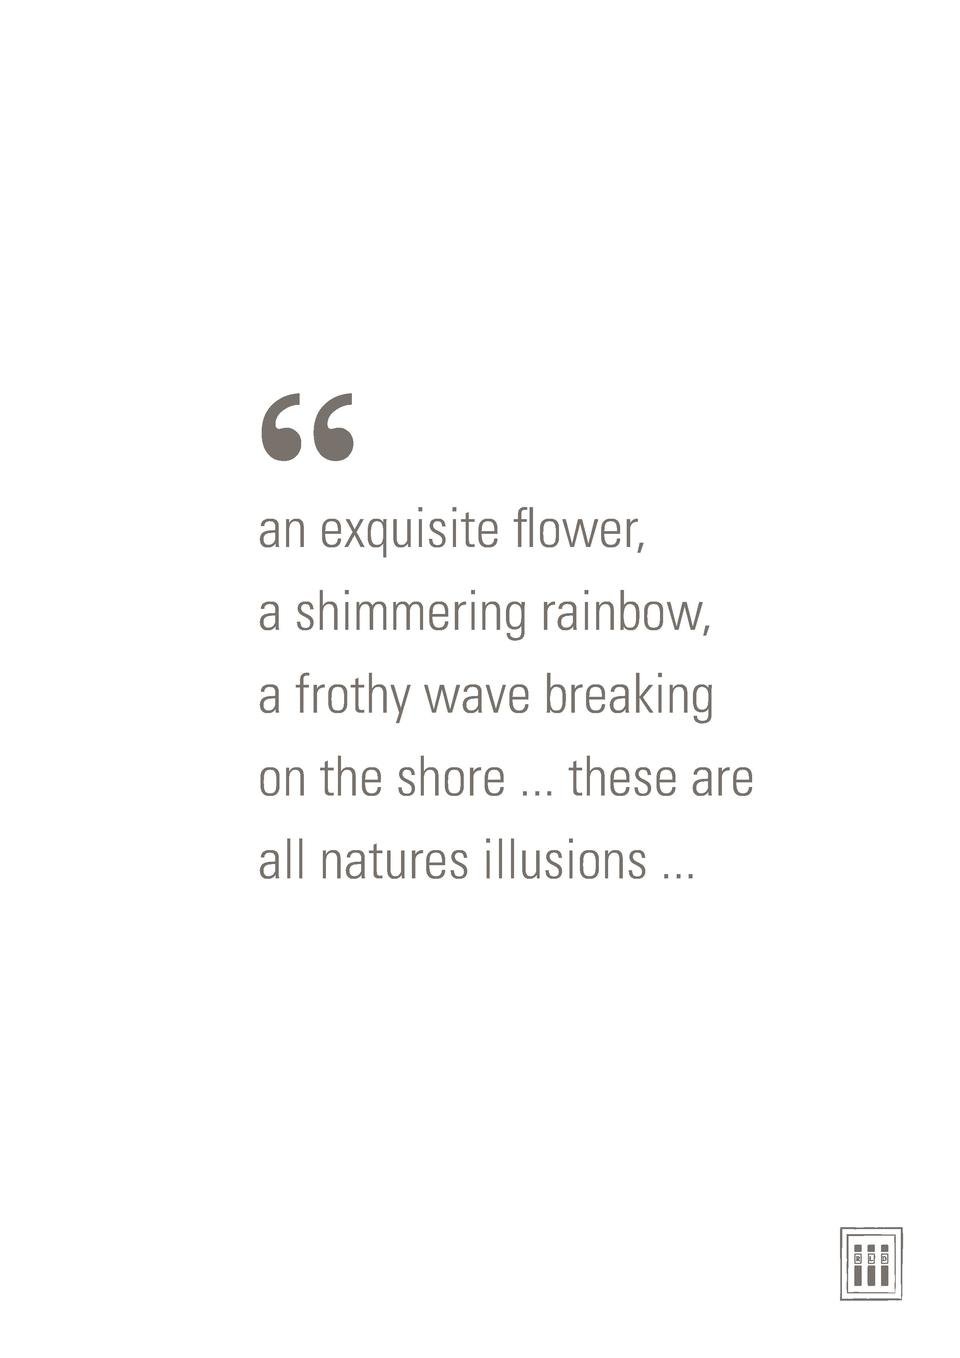 an exquisite flower, a shimmering rainbow, a frothy wave breaking on the shore ... these are all natures illusions .....